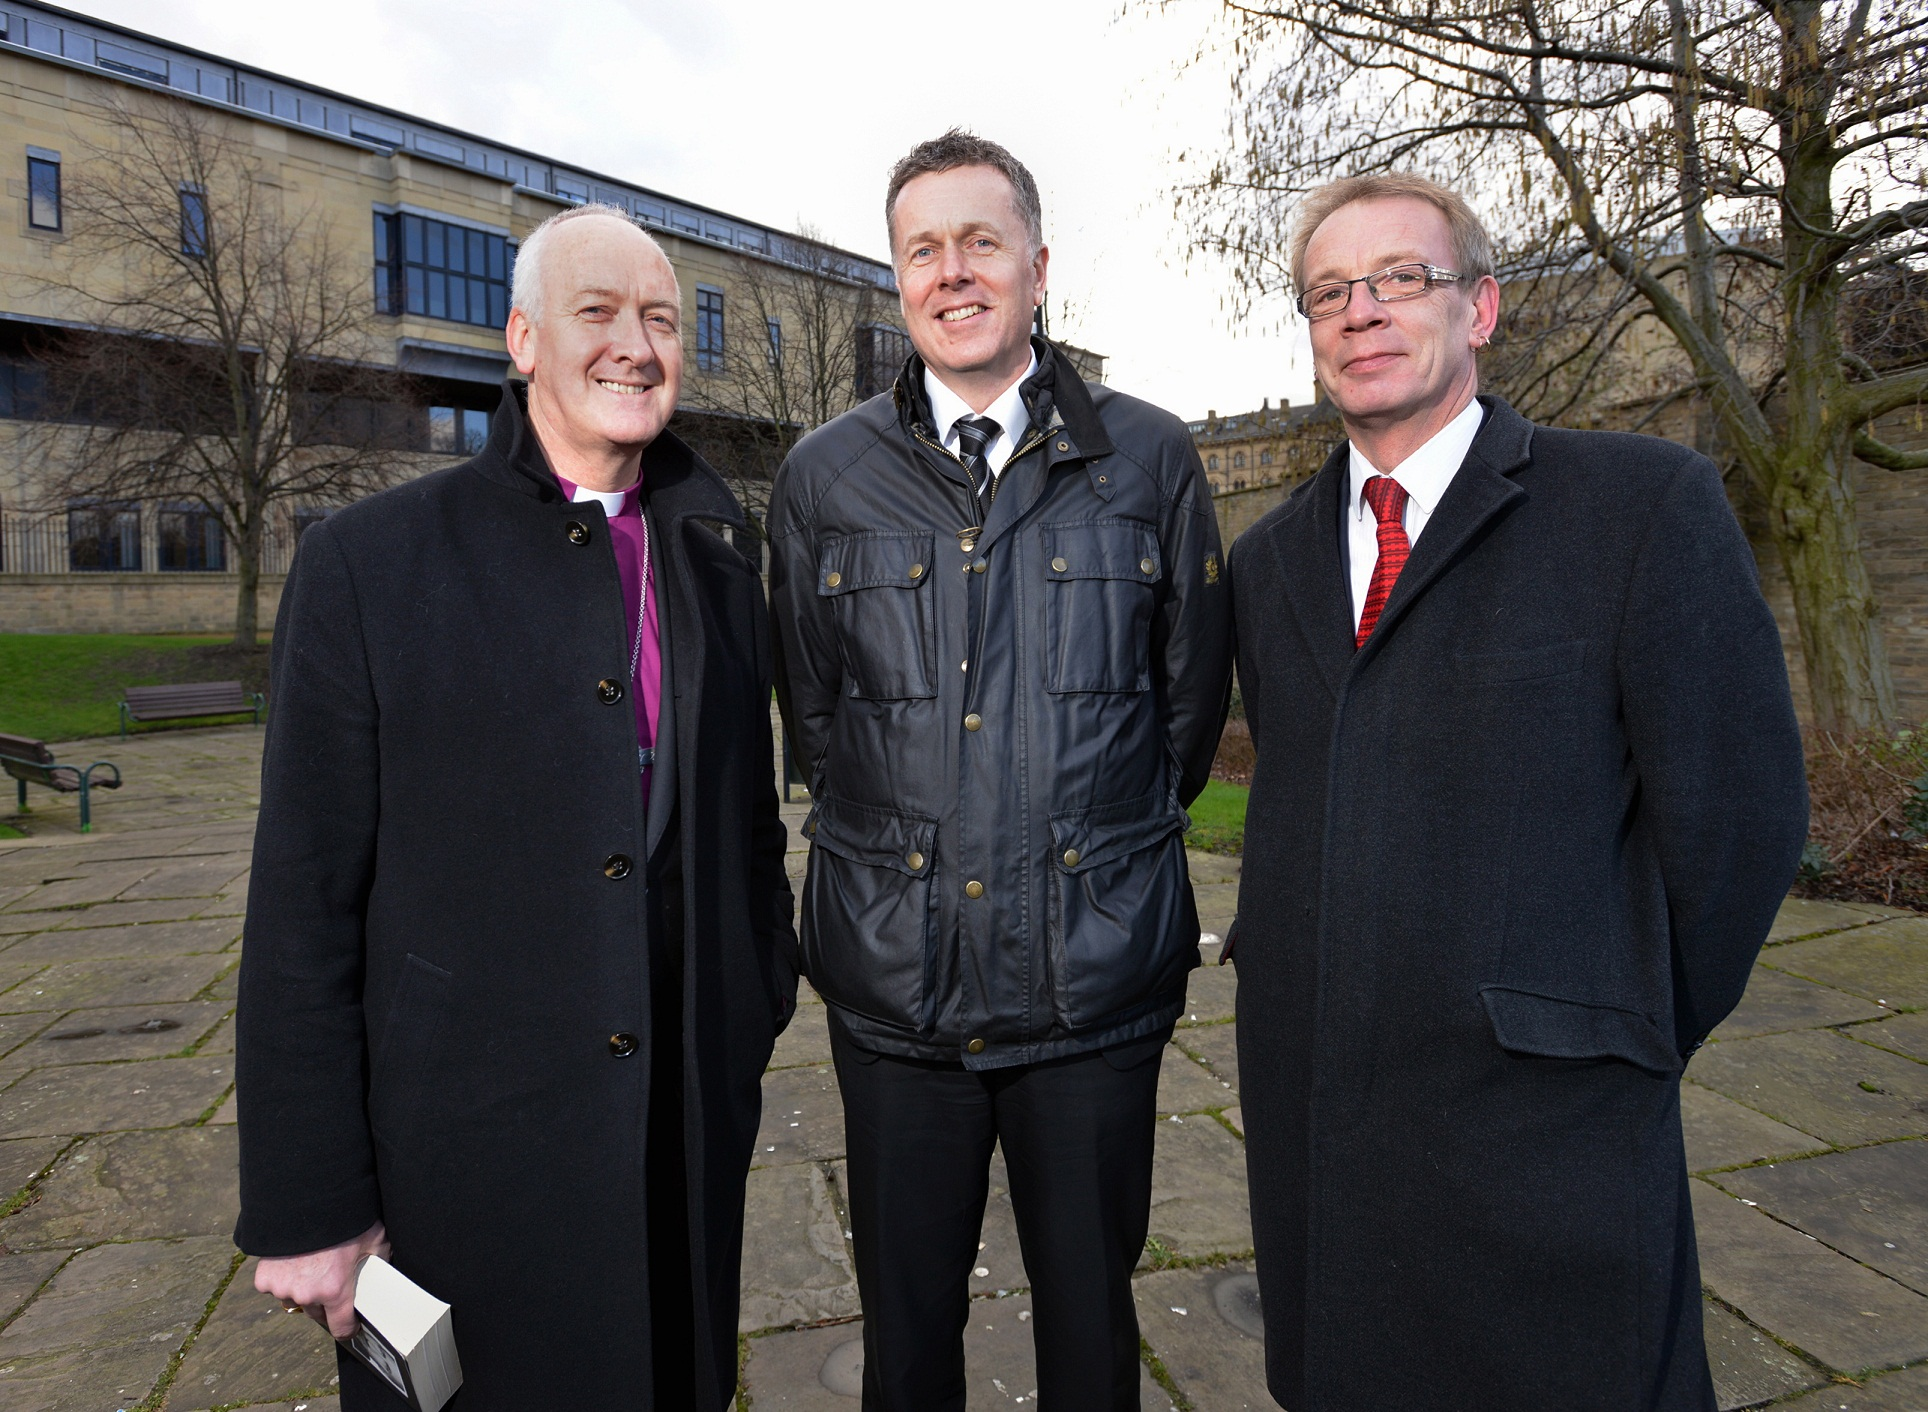 Right Reverend Nick Baines (left) with Tony Reeves, the chief executive of Bradford Council (centre) , and Councillor Dave Green, the leader of the Council